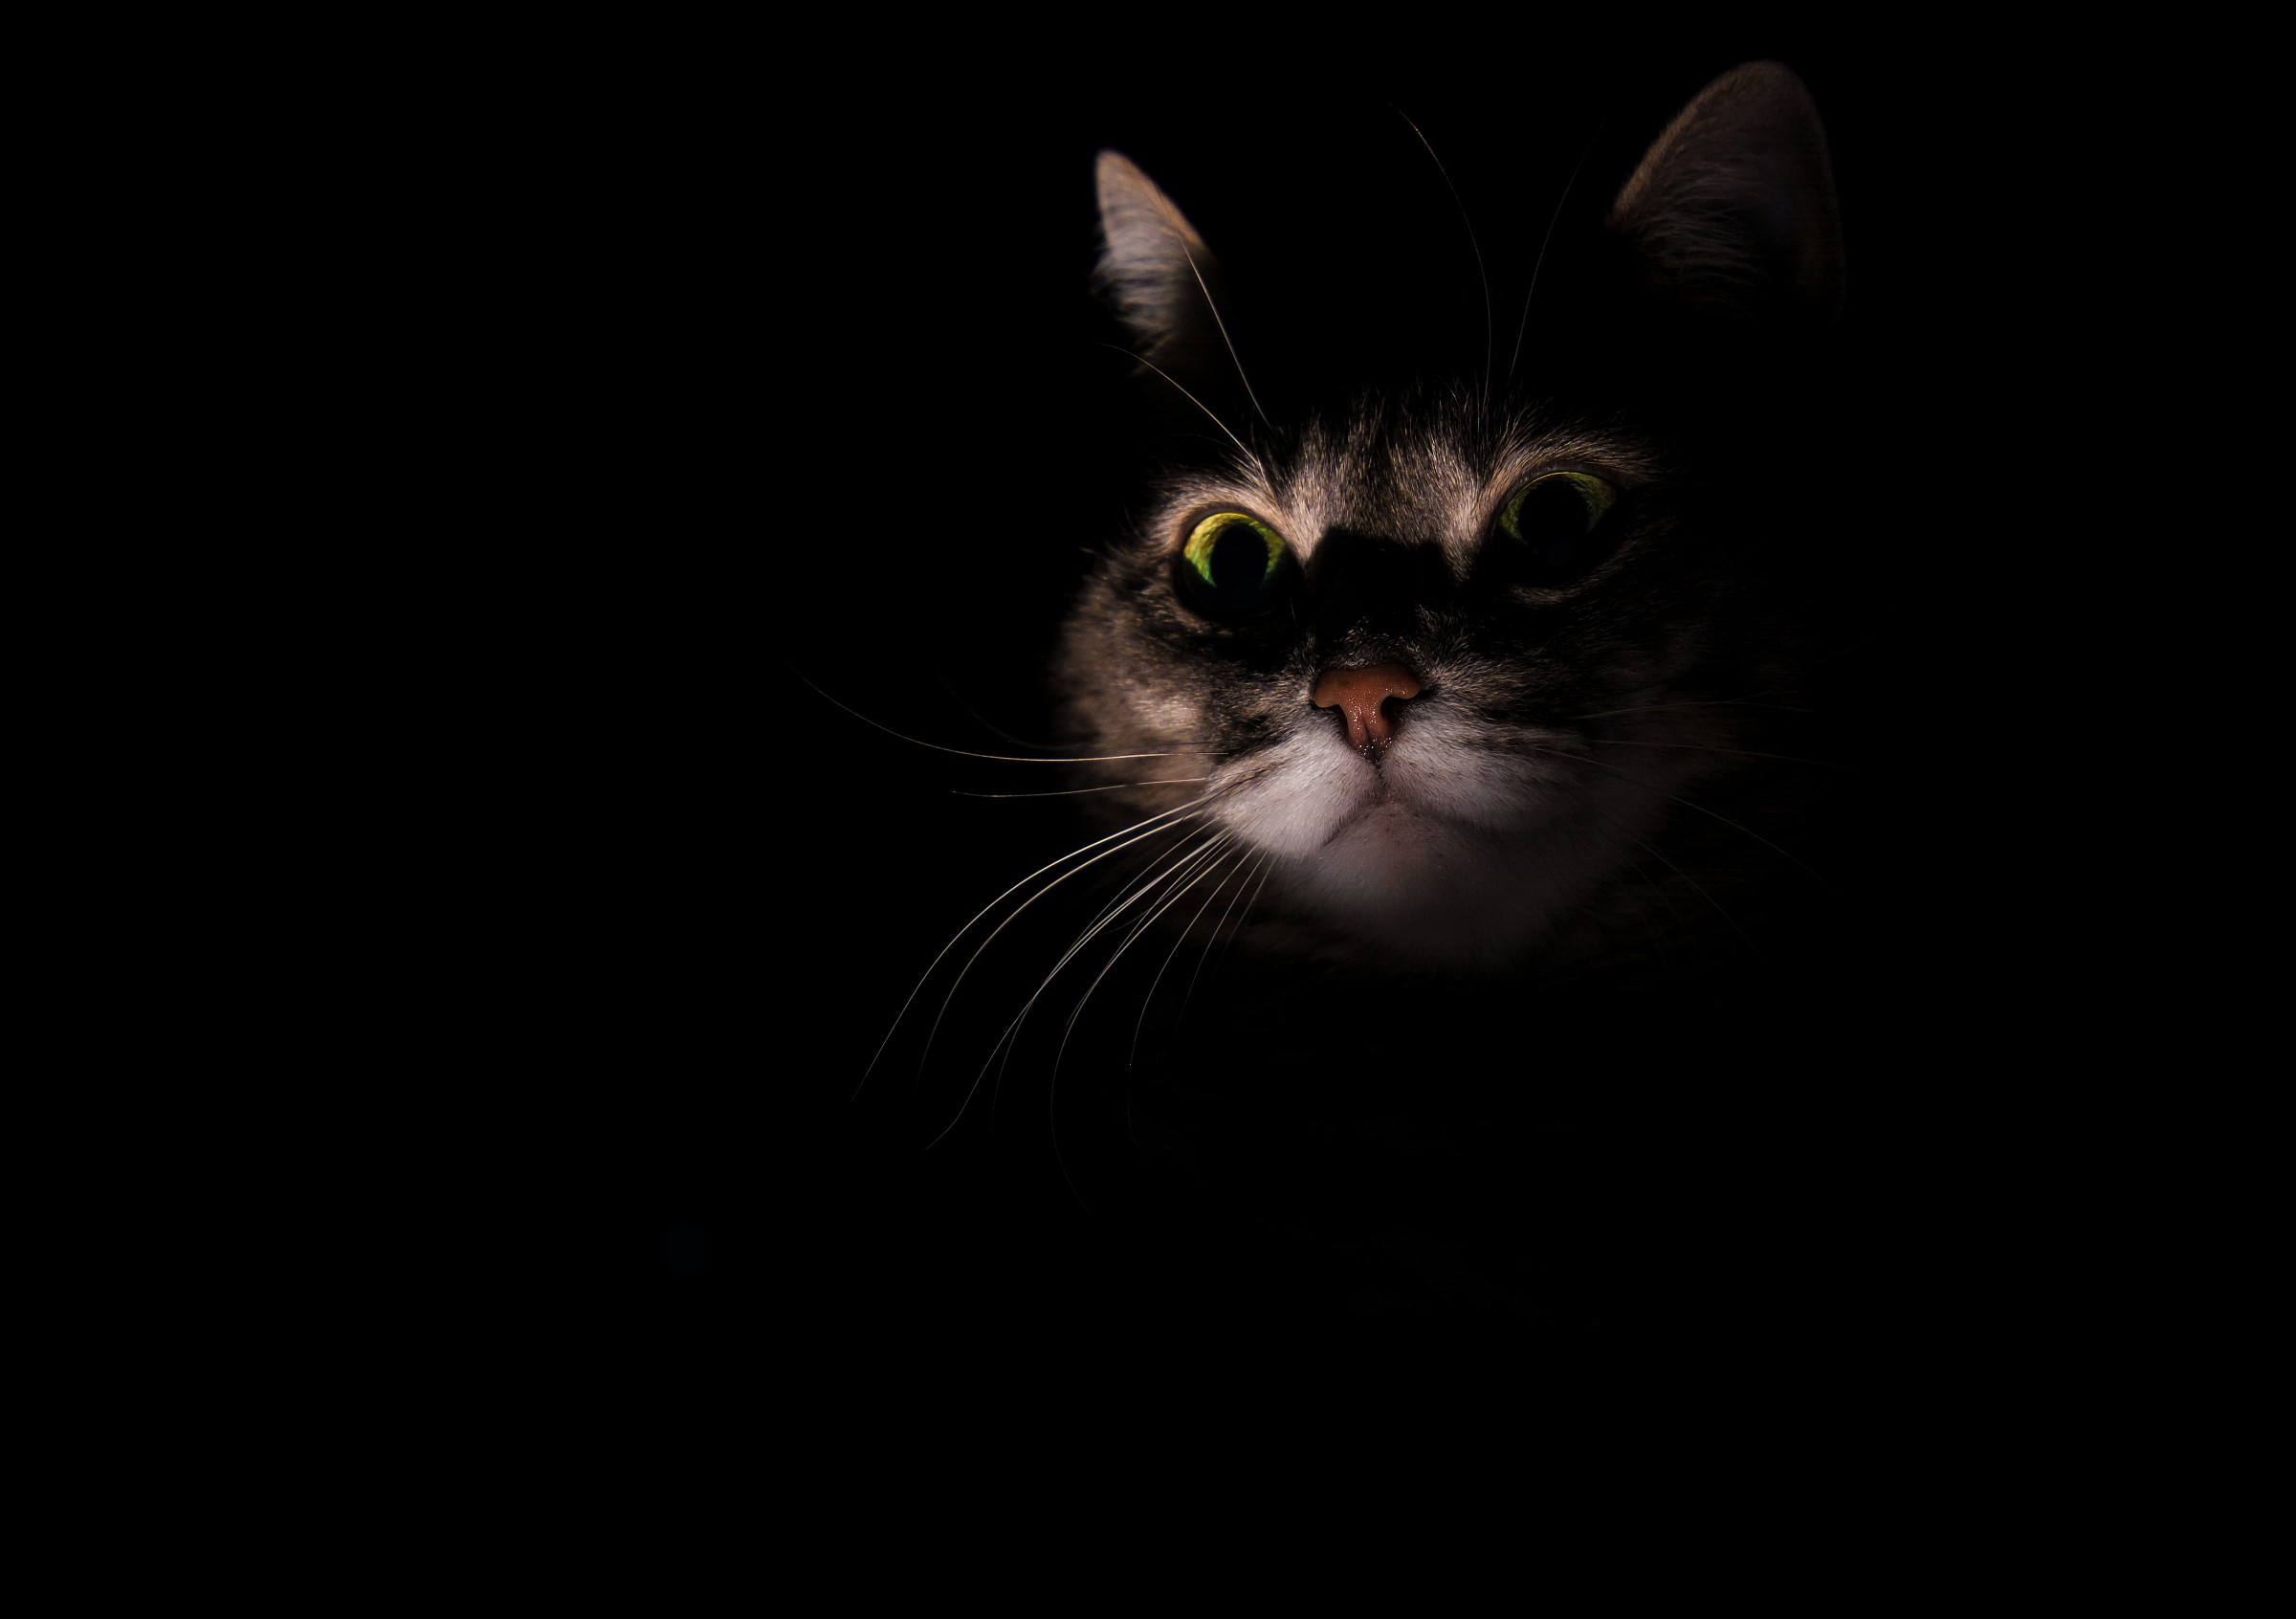 The Cat Into The Darkness!...